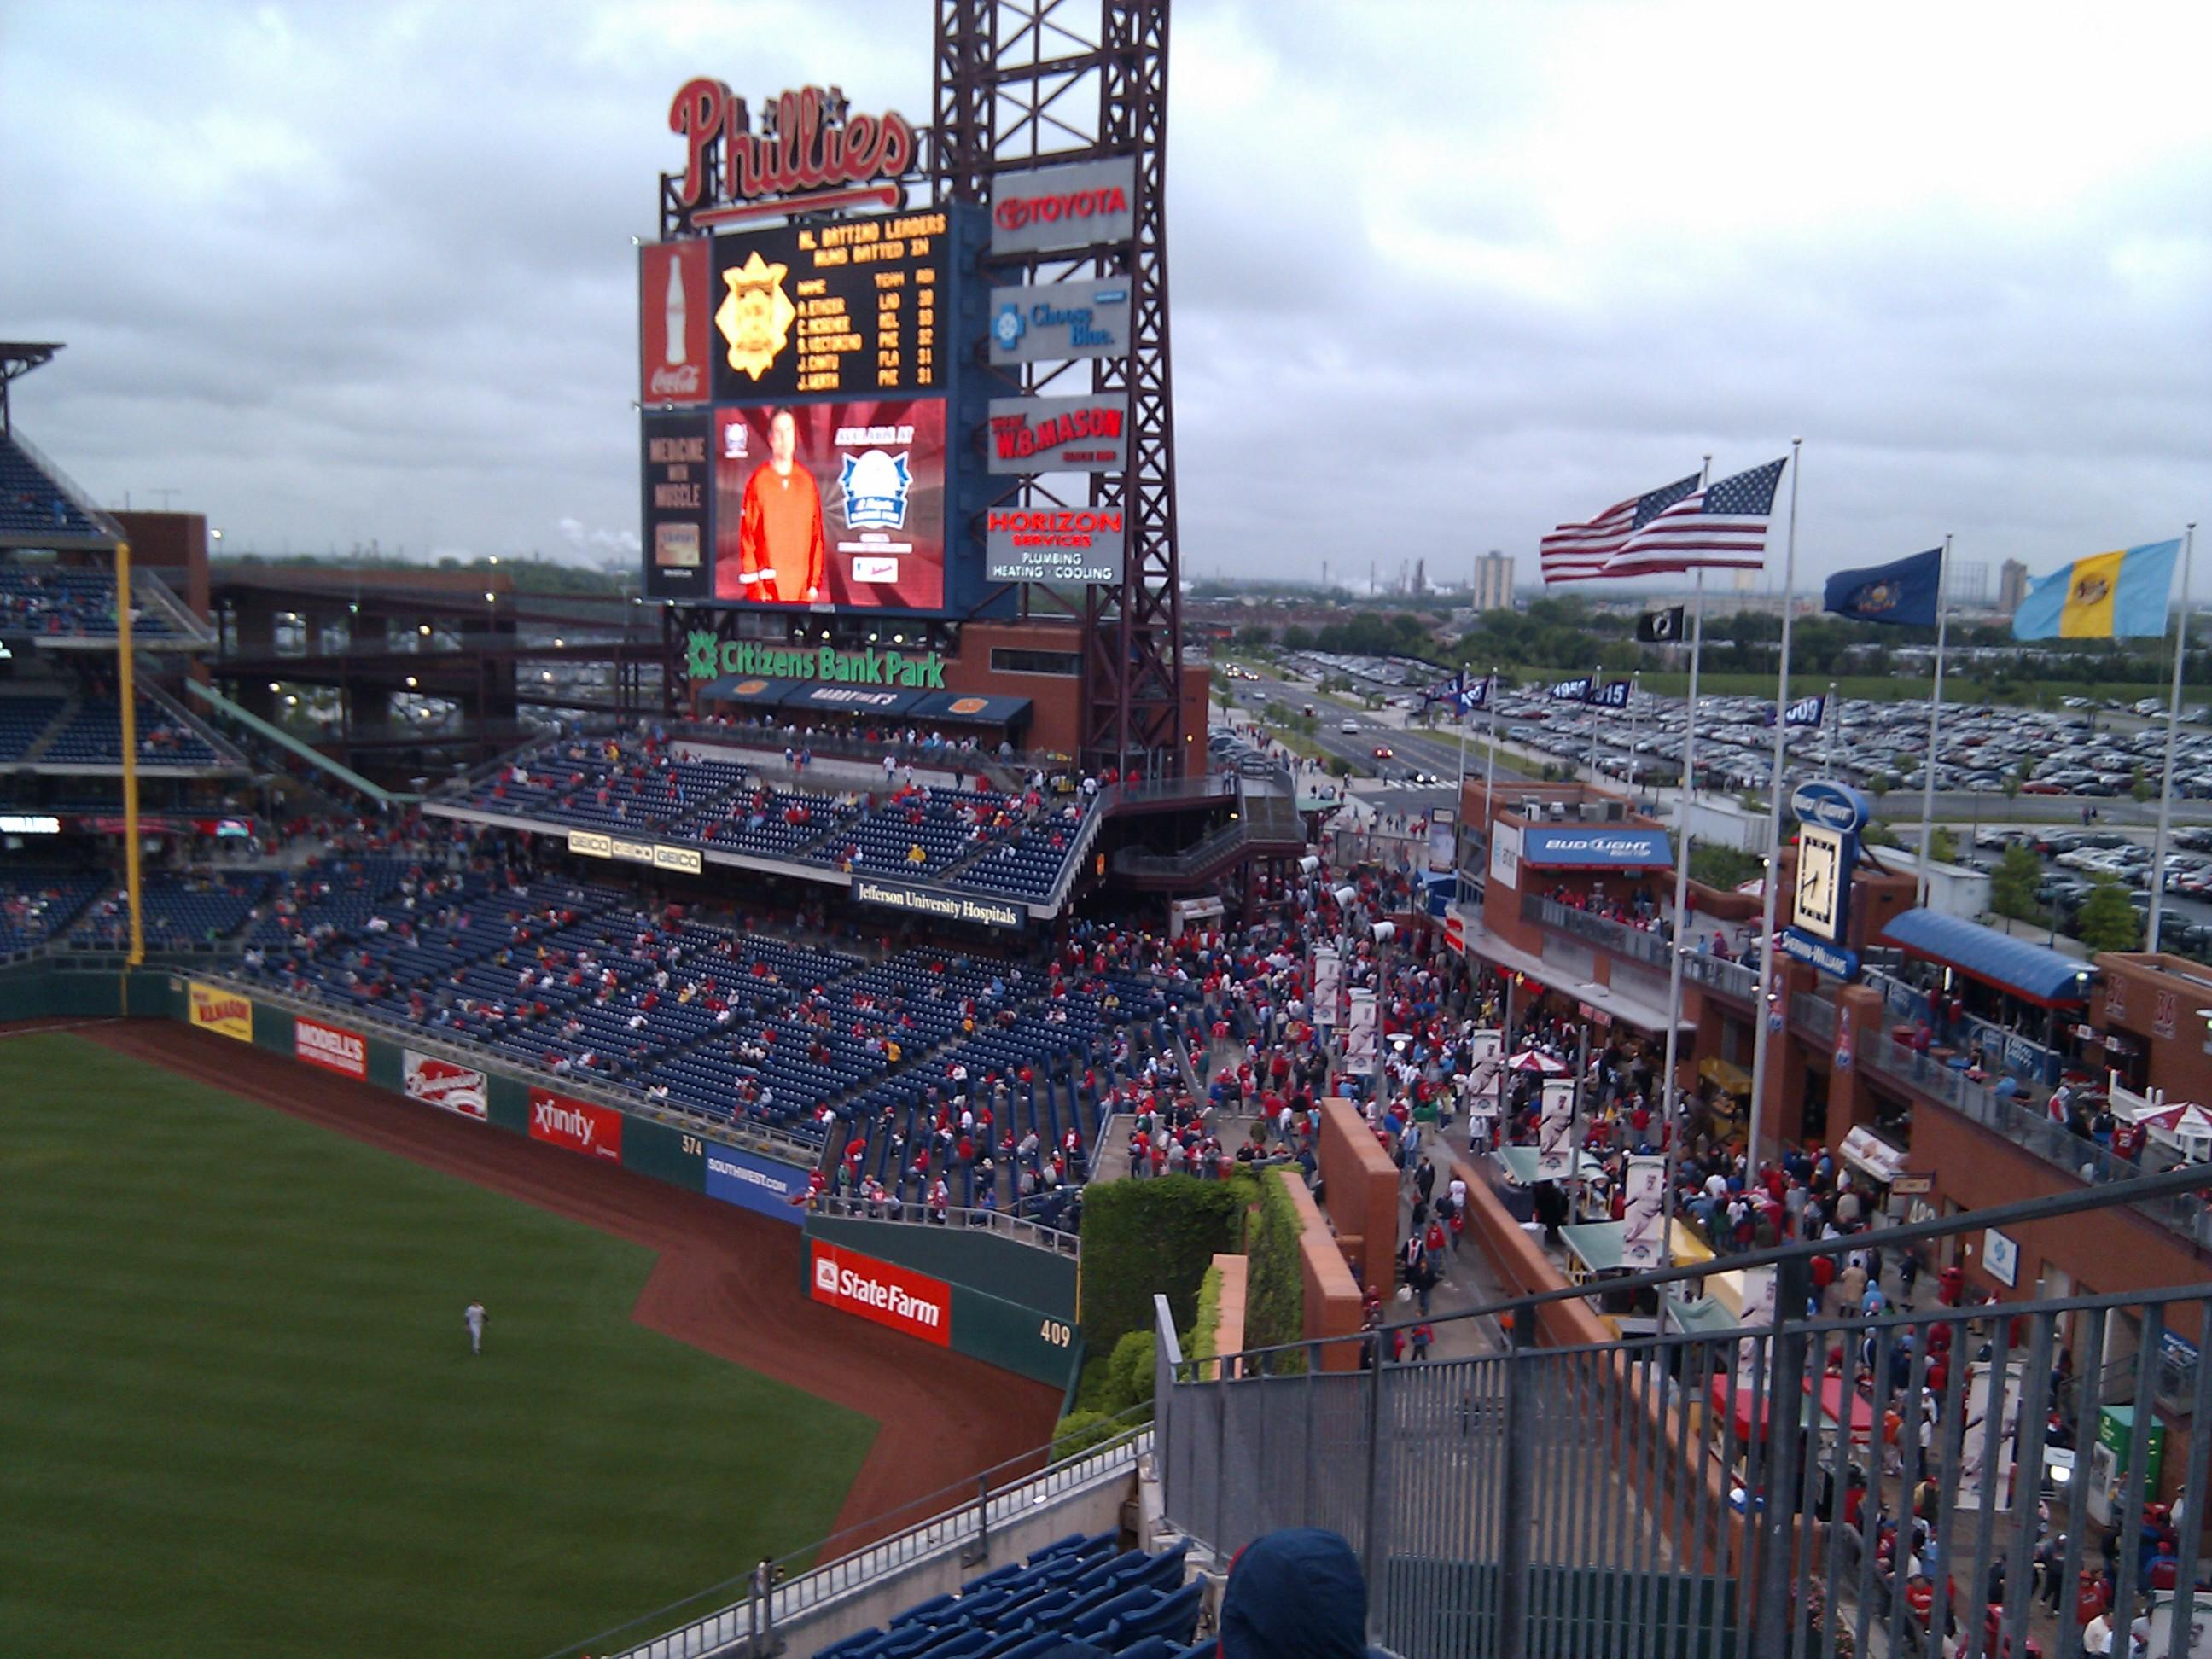 Citizens Bank Park Section 301 Row 10 Seat 18